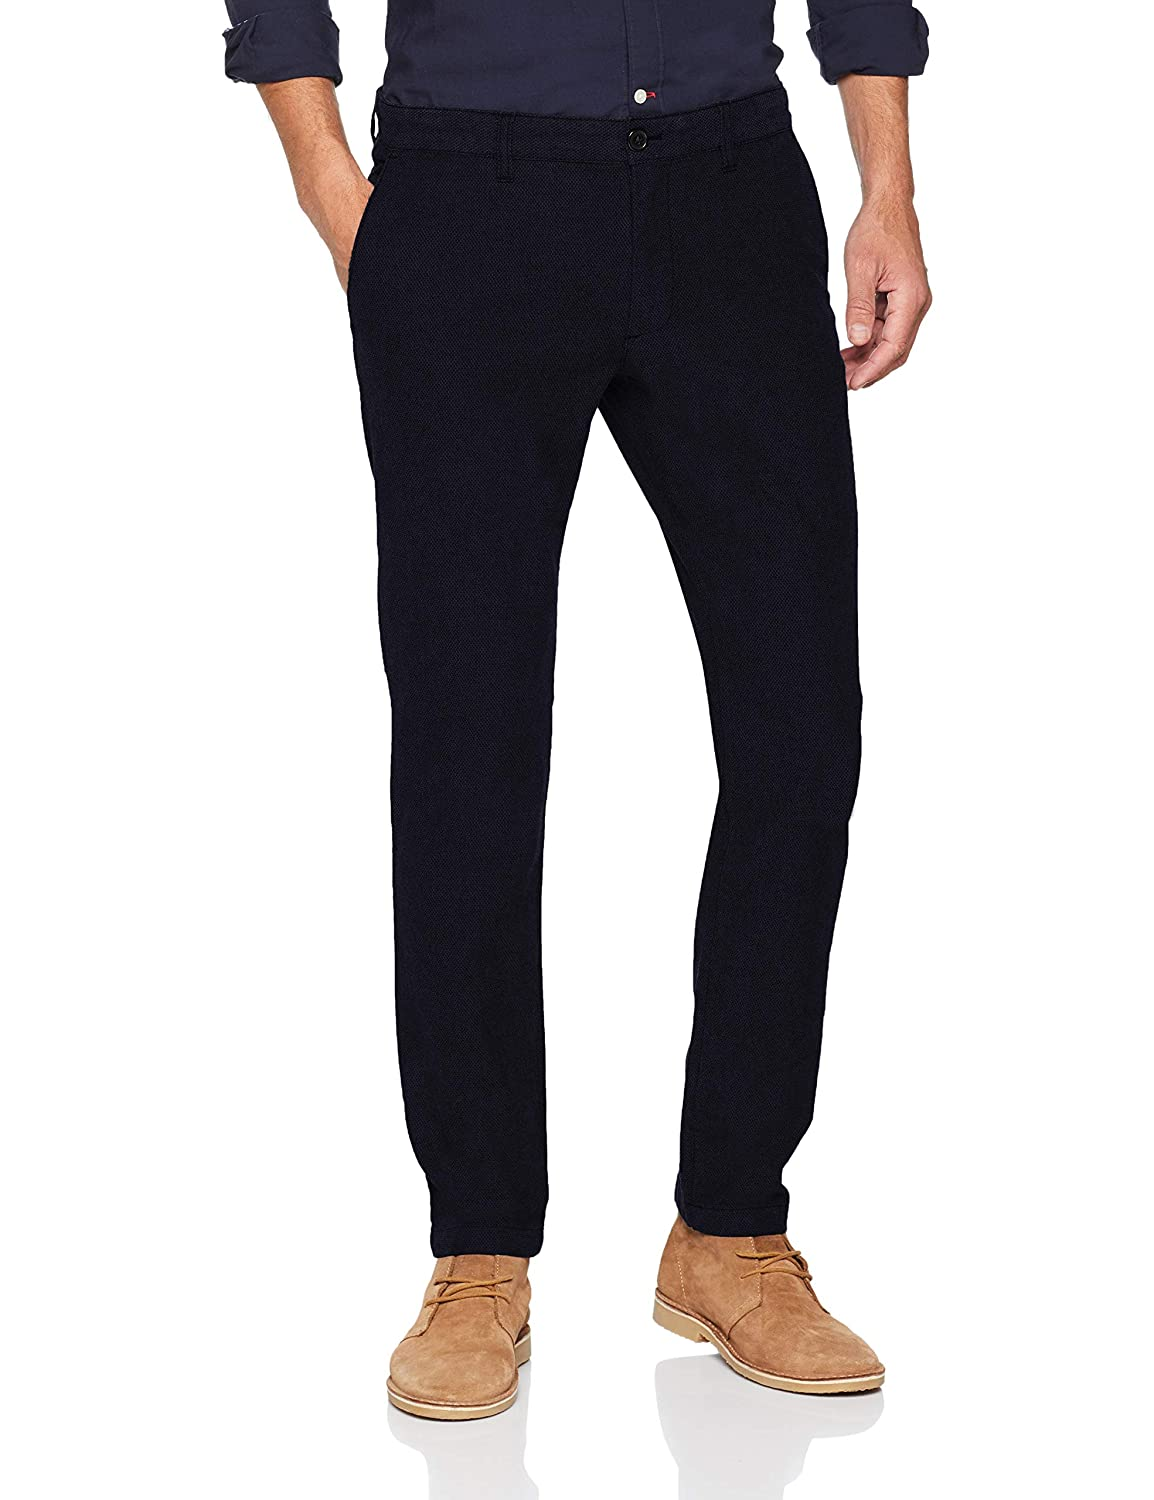 ESPRIT Collection Pantalones para Hombre